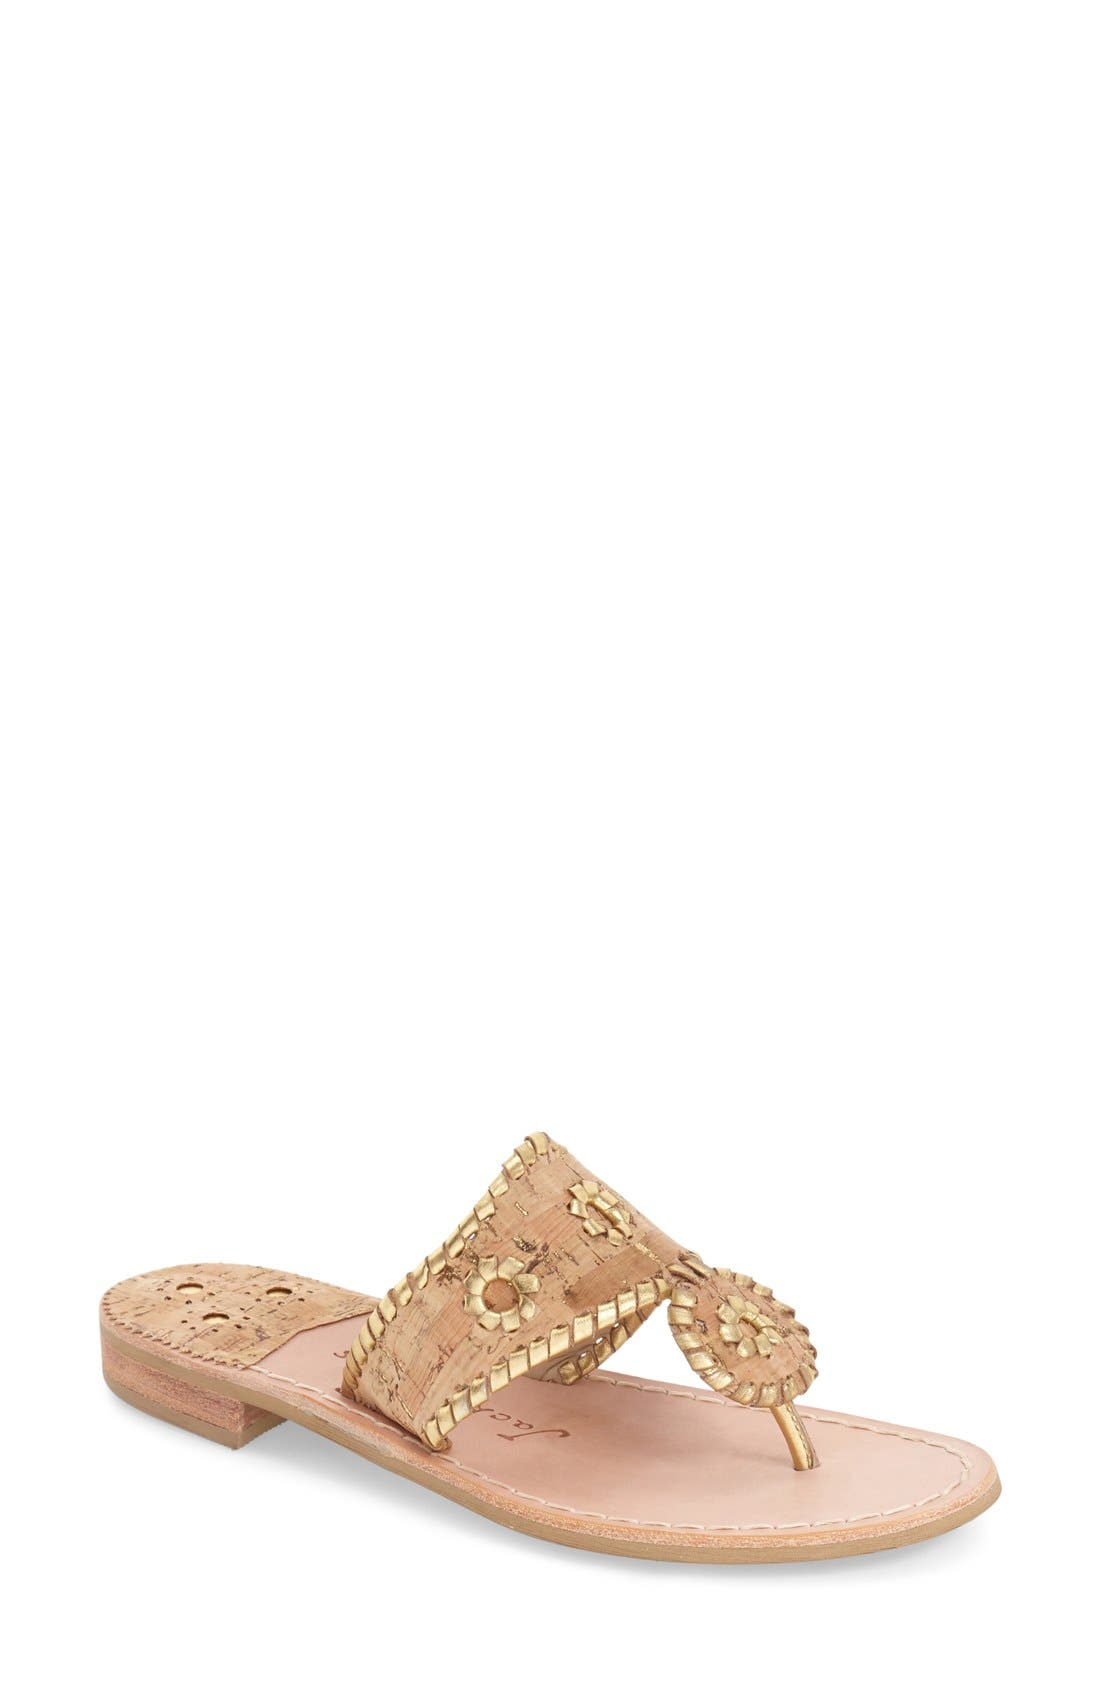 JACK ROGERS Napa Valley Cork Thong, Natural/Gold in Cork/ Gold